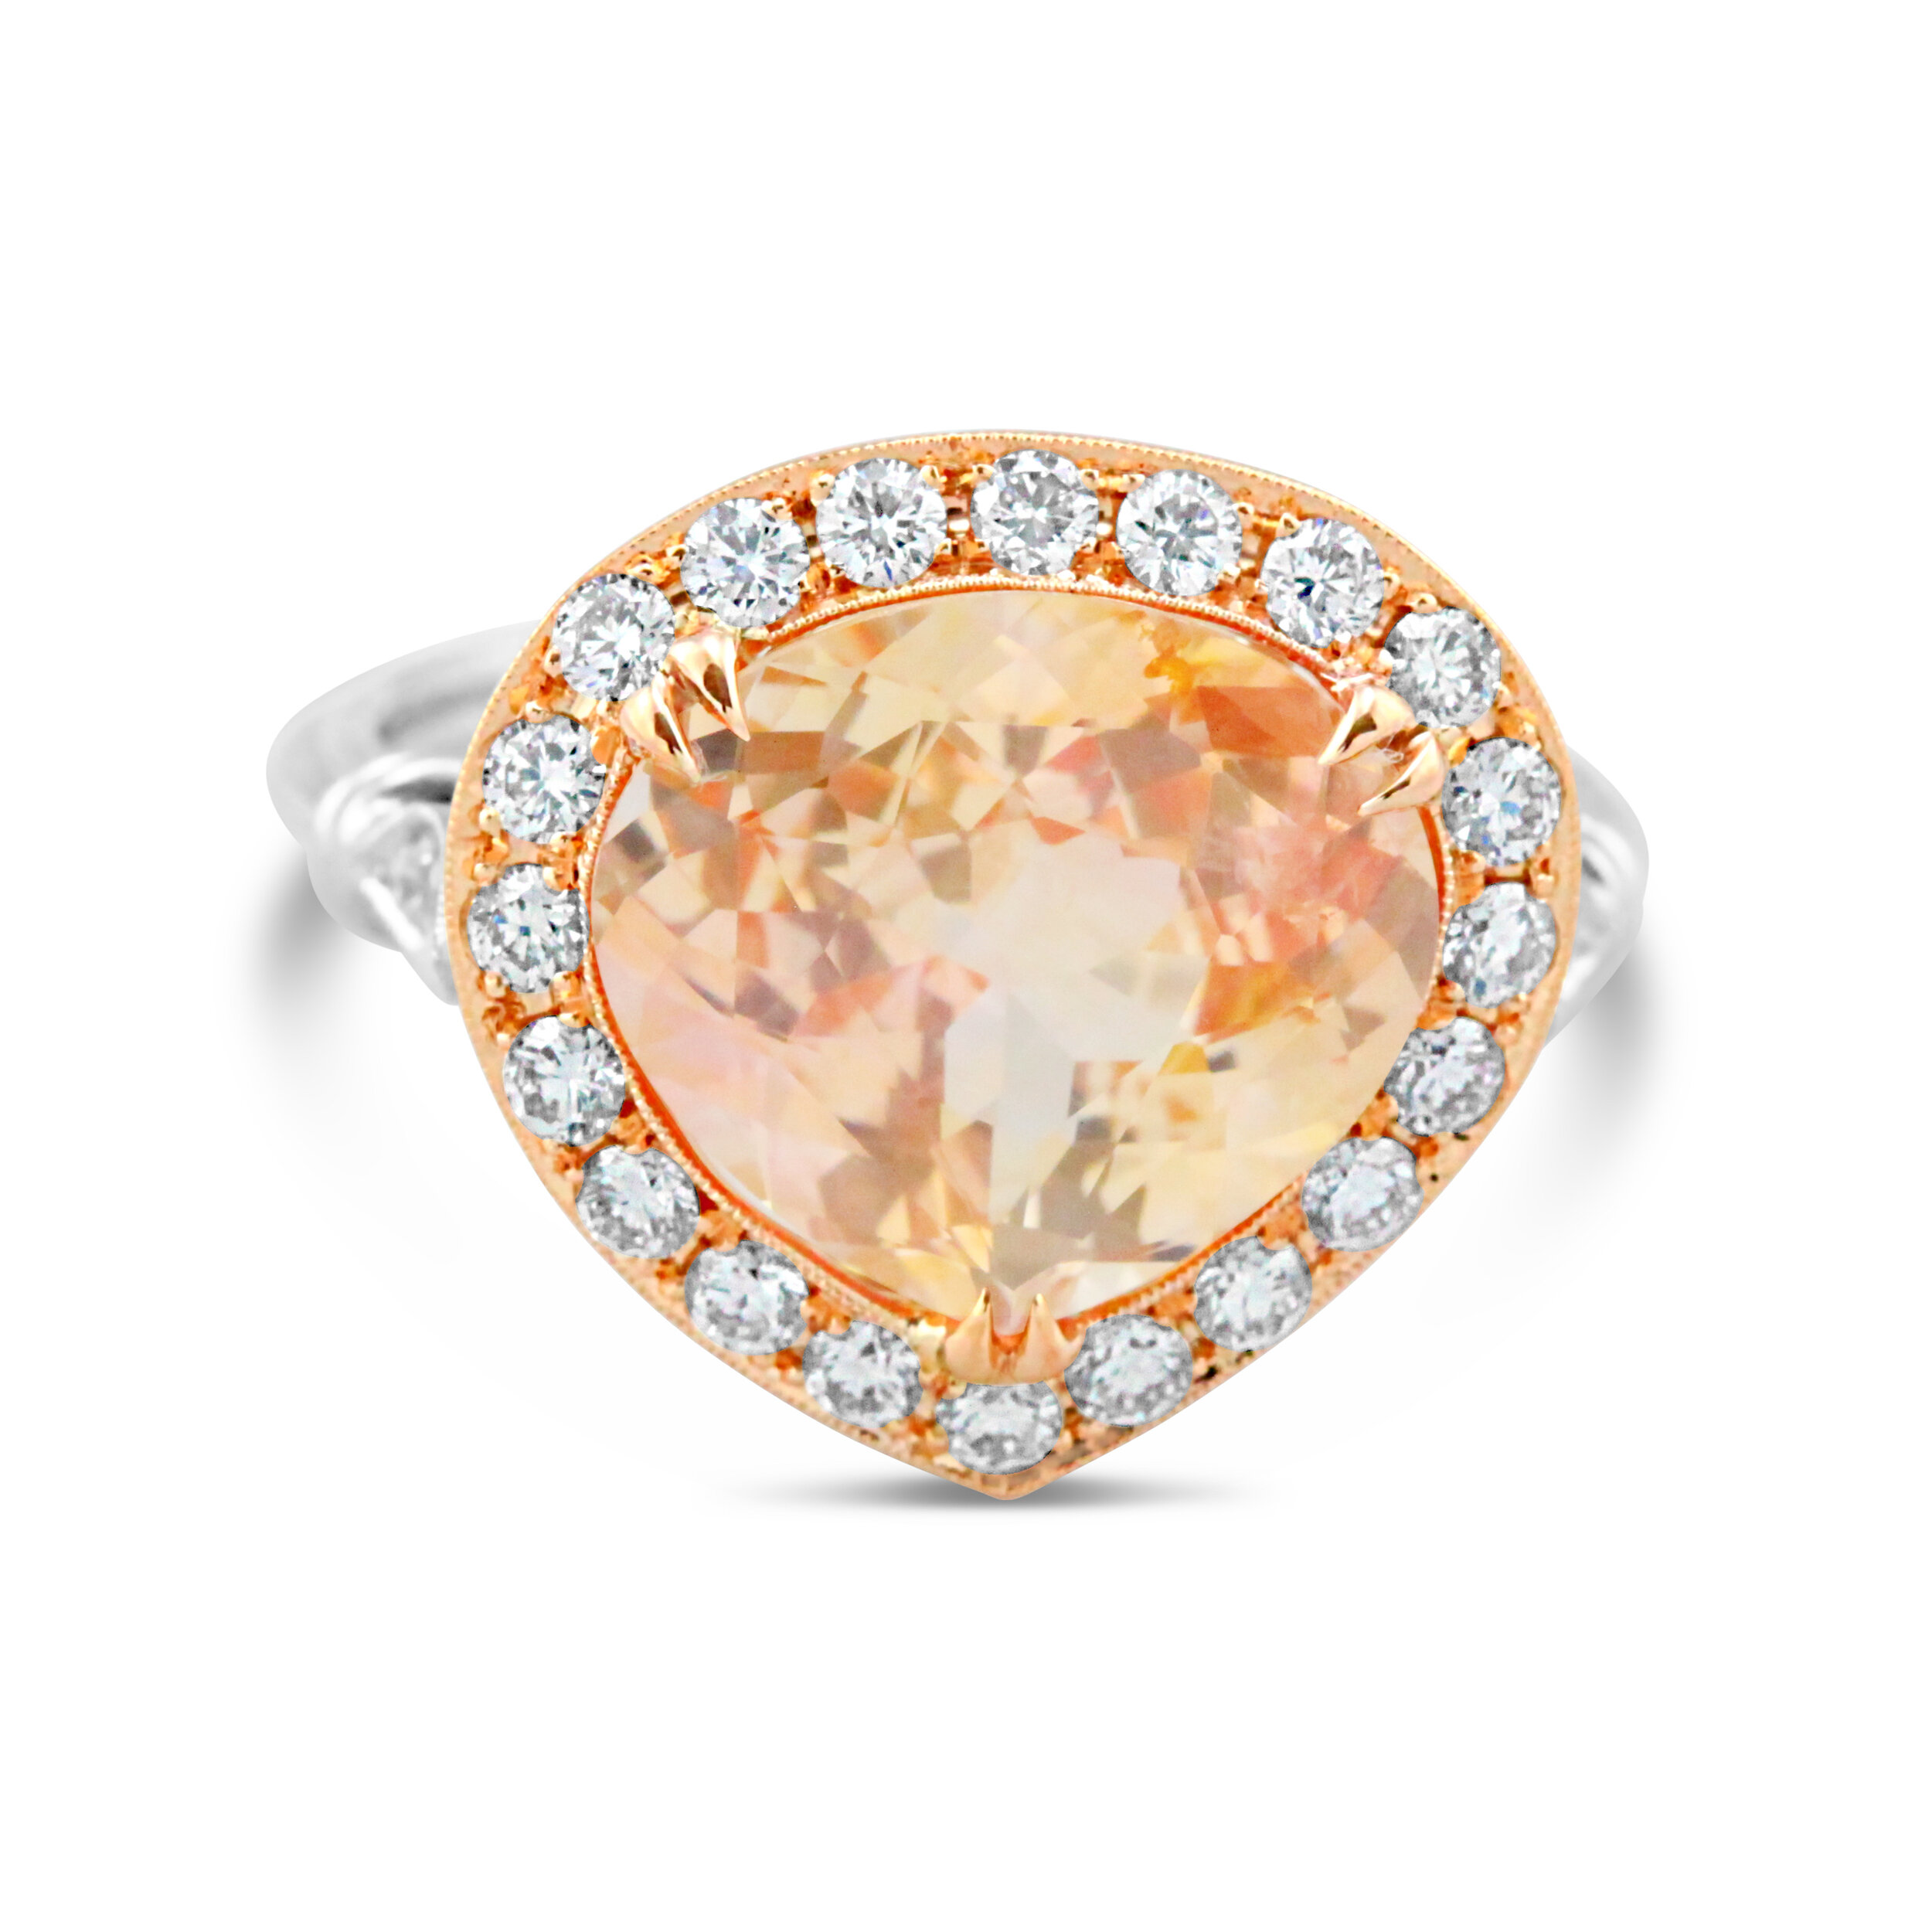 This 5 ct unheated padparadscha has been positively tested for color stability by Lotus Gemology, Bangkok.